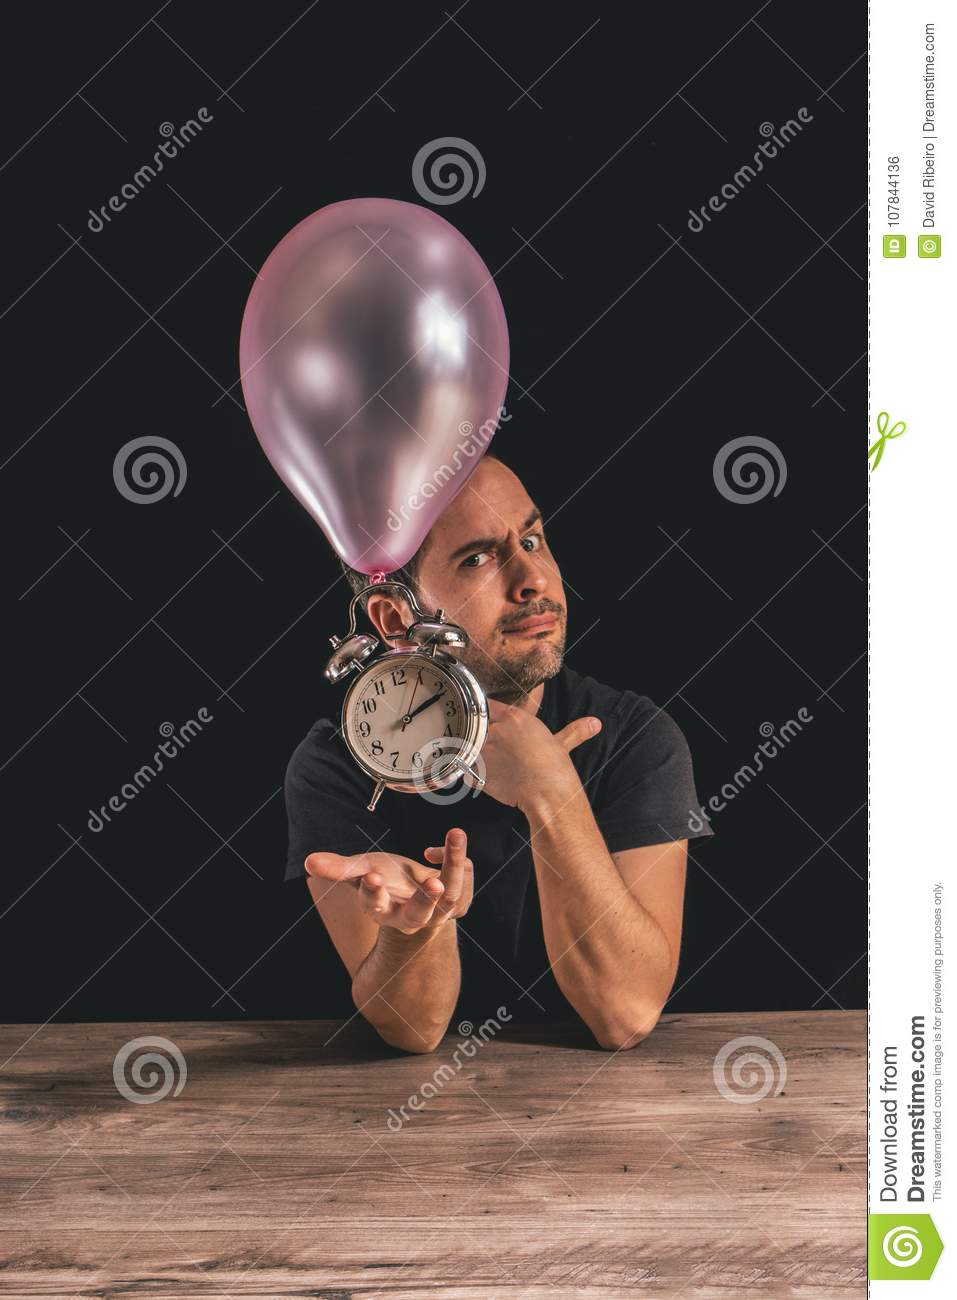 Time flies concept - picture of a man looking at the camera while placing his hand underneath an old metal clock